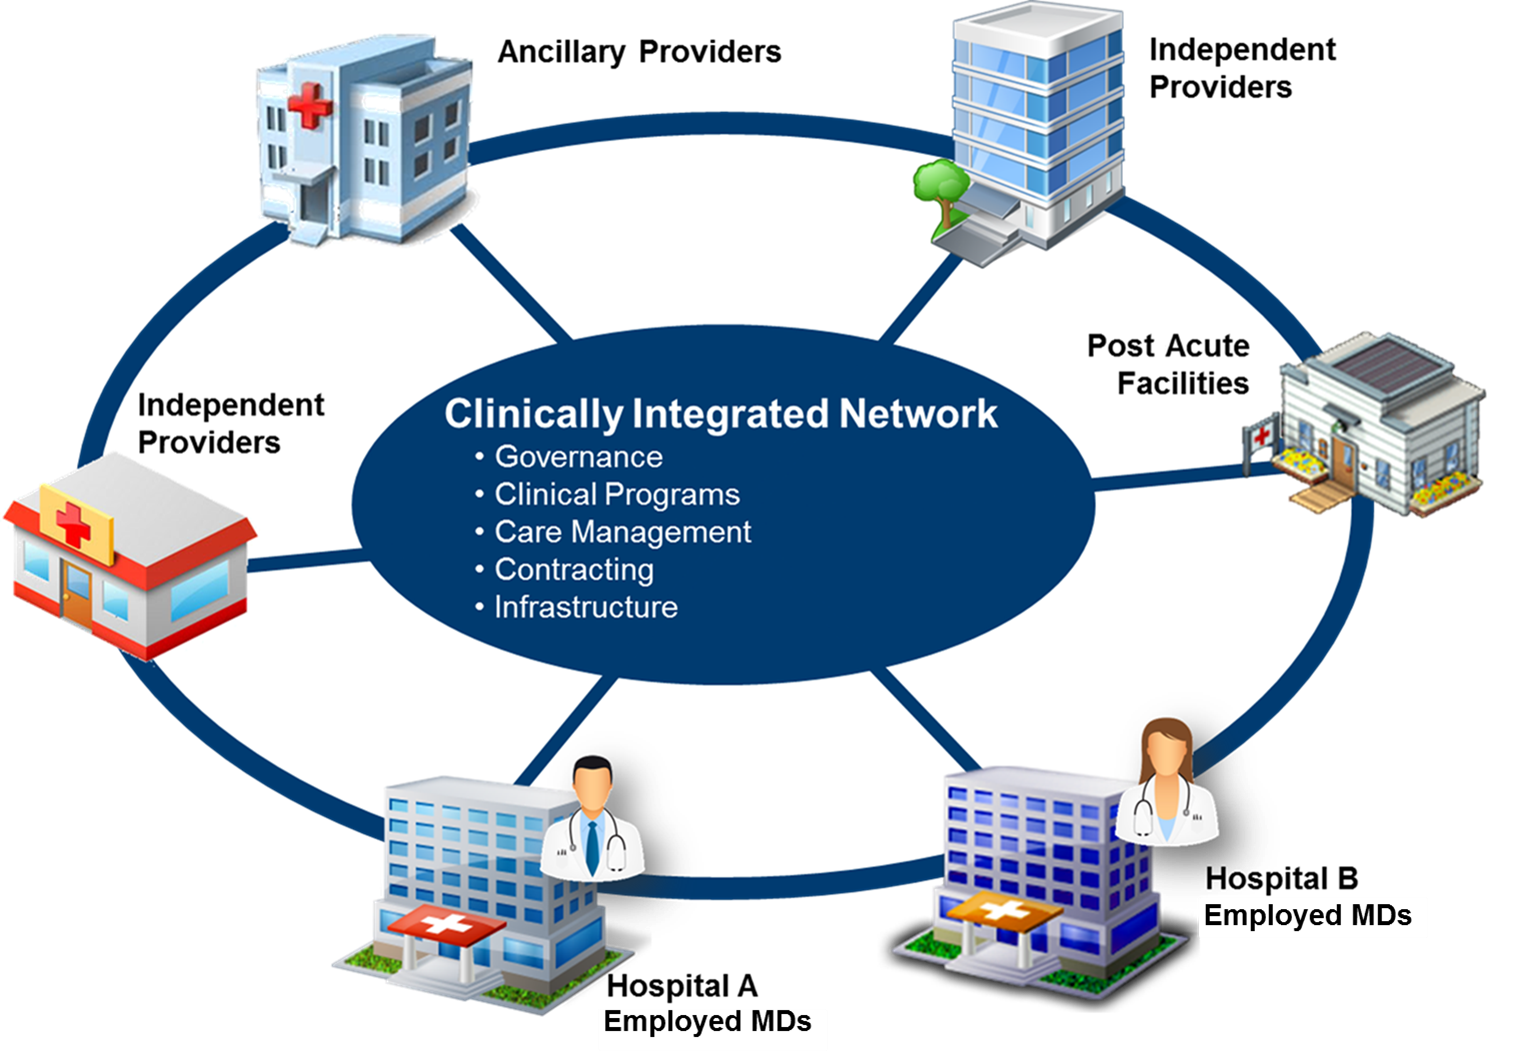 Clinically Integrated Network, CIN